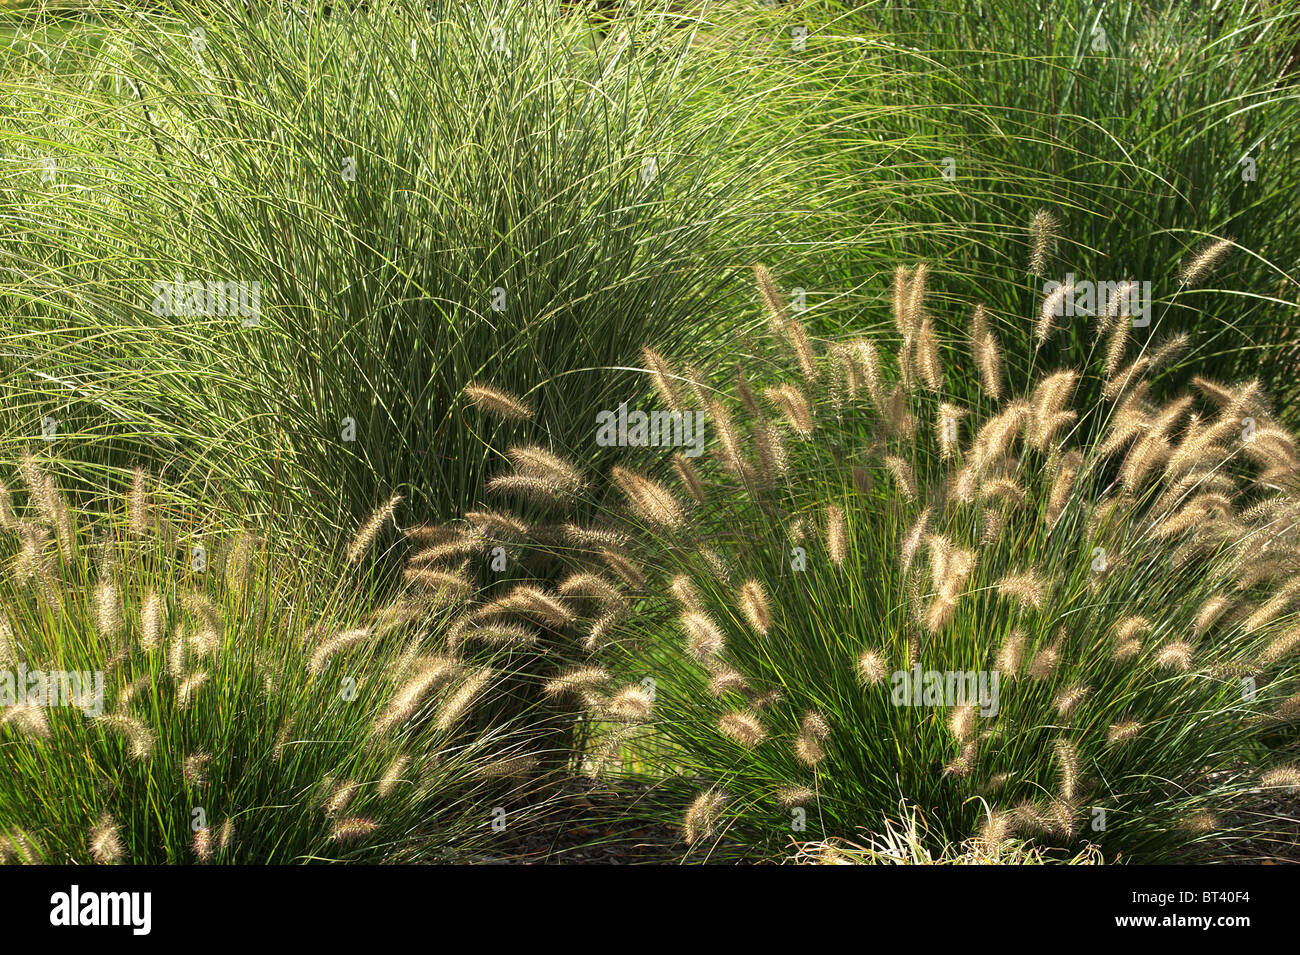 tall ornamental grass stockfotos tall ornamental grass bilder alamy. Black Bedroom Furniture Sets. Home Design Ideas